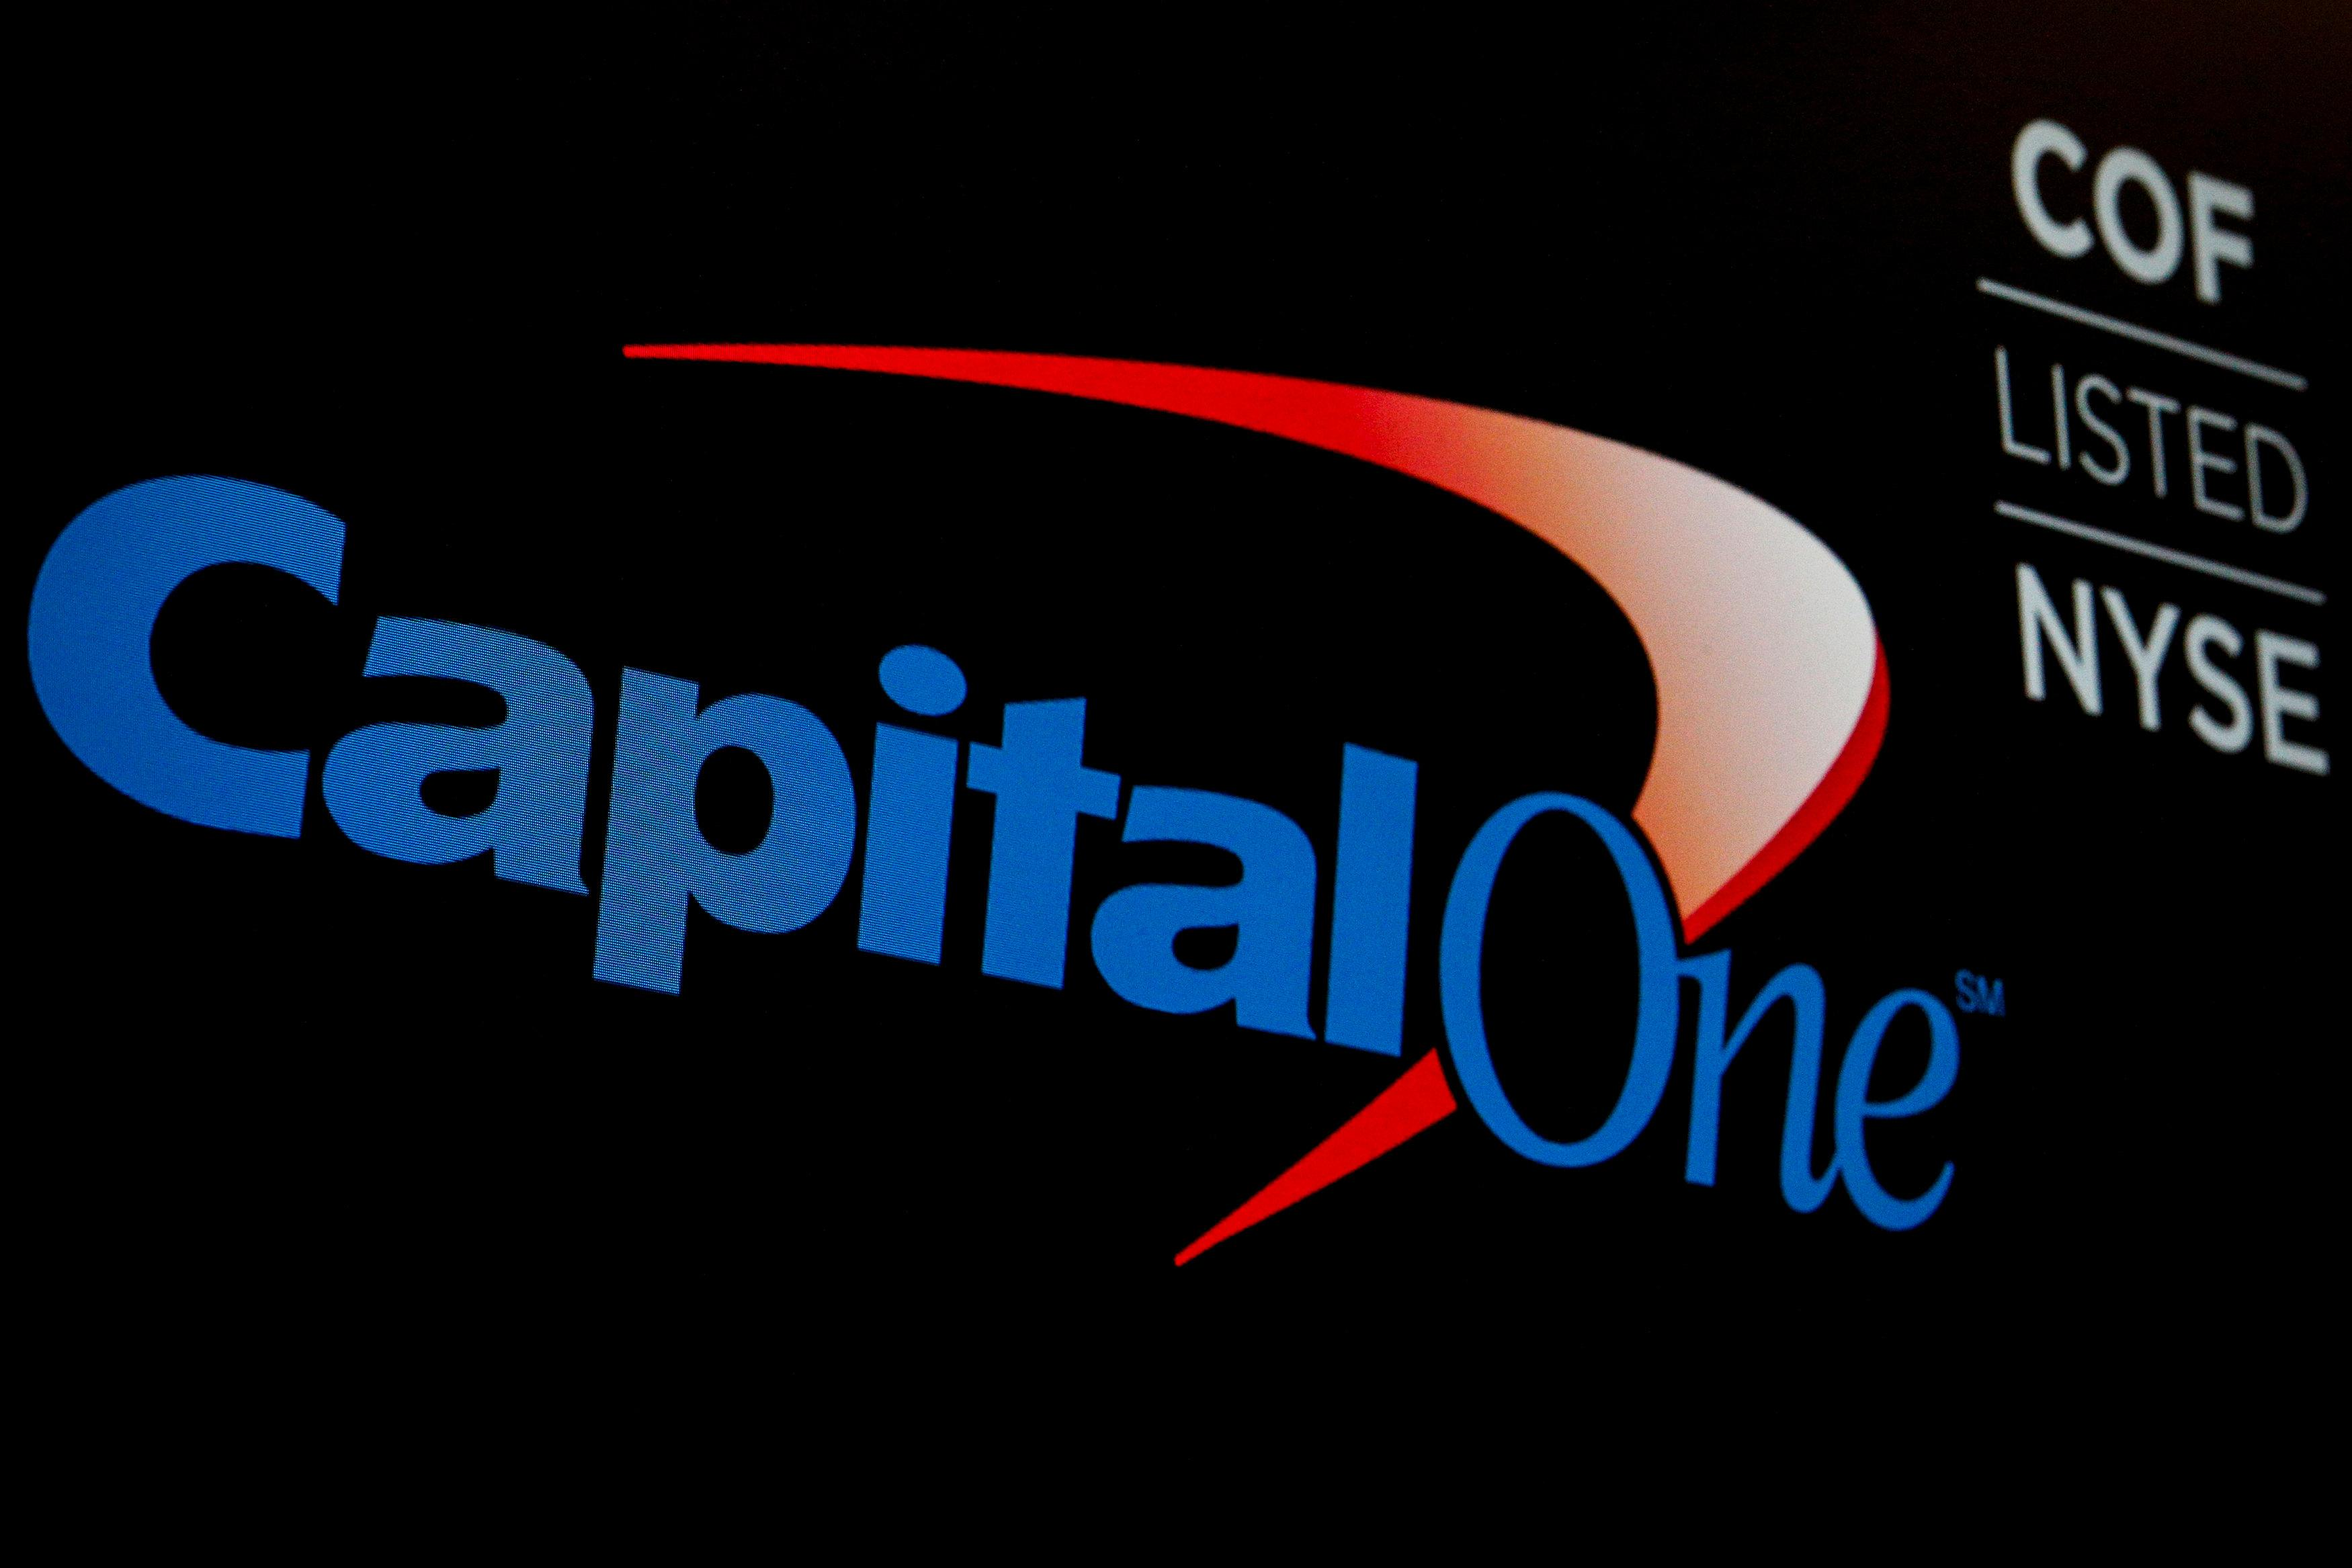 Capital One's new signup bonus surpasses Chase's Sapphire cards